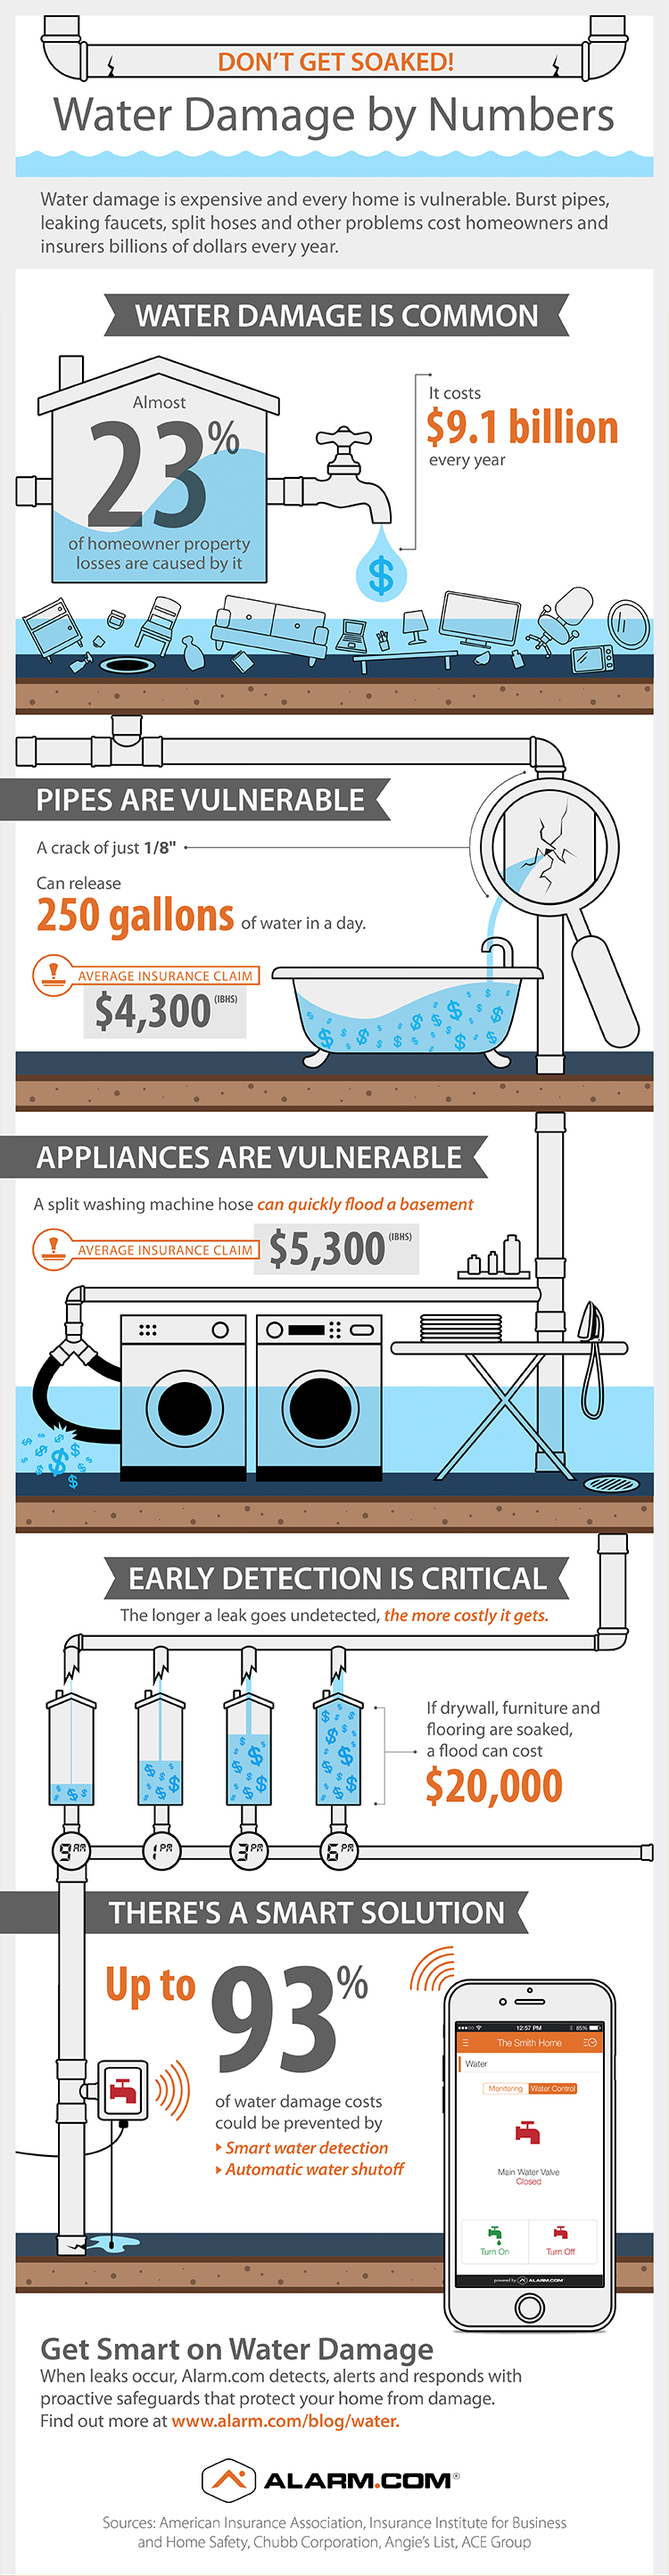 Water Damage By Numbers medium